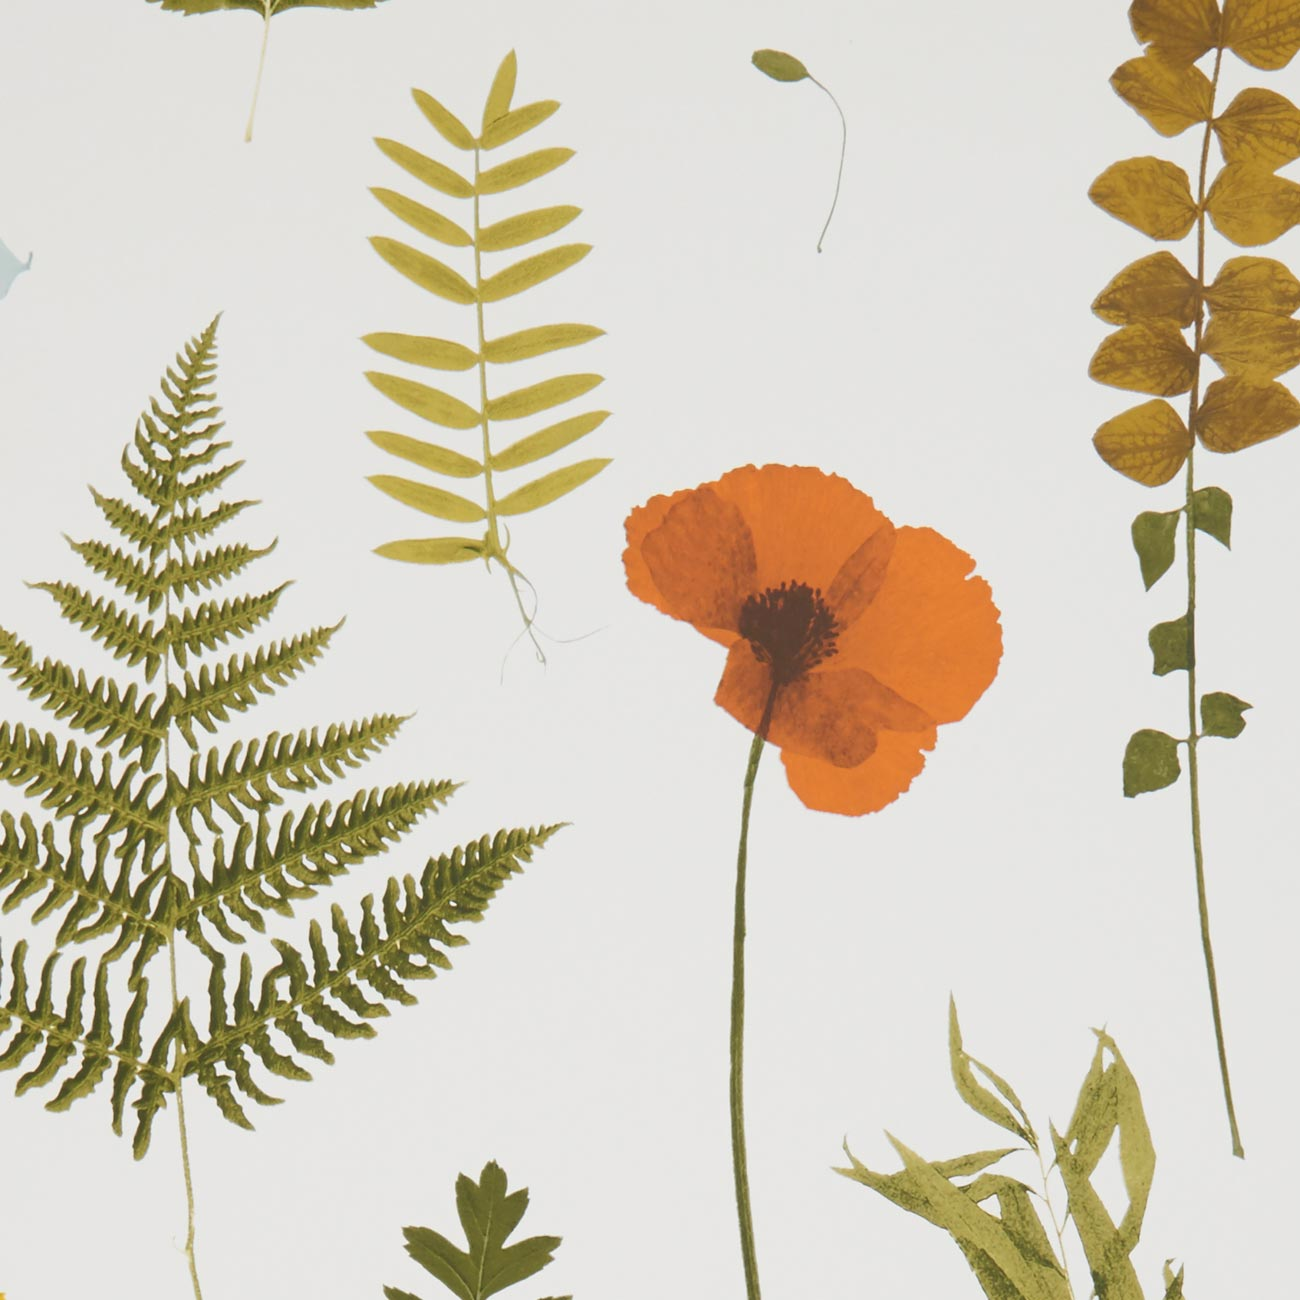 Herbarium Pressed Flower Effect Floral Wallpaper | Multi-Coloured, Orange and Green